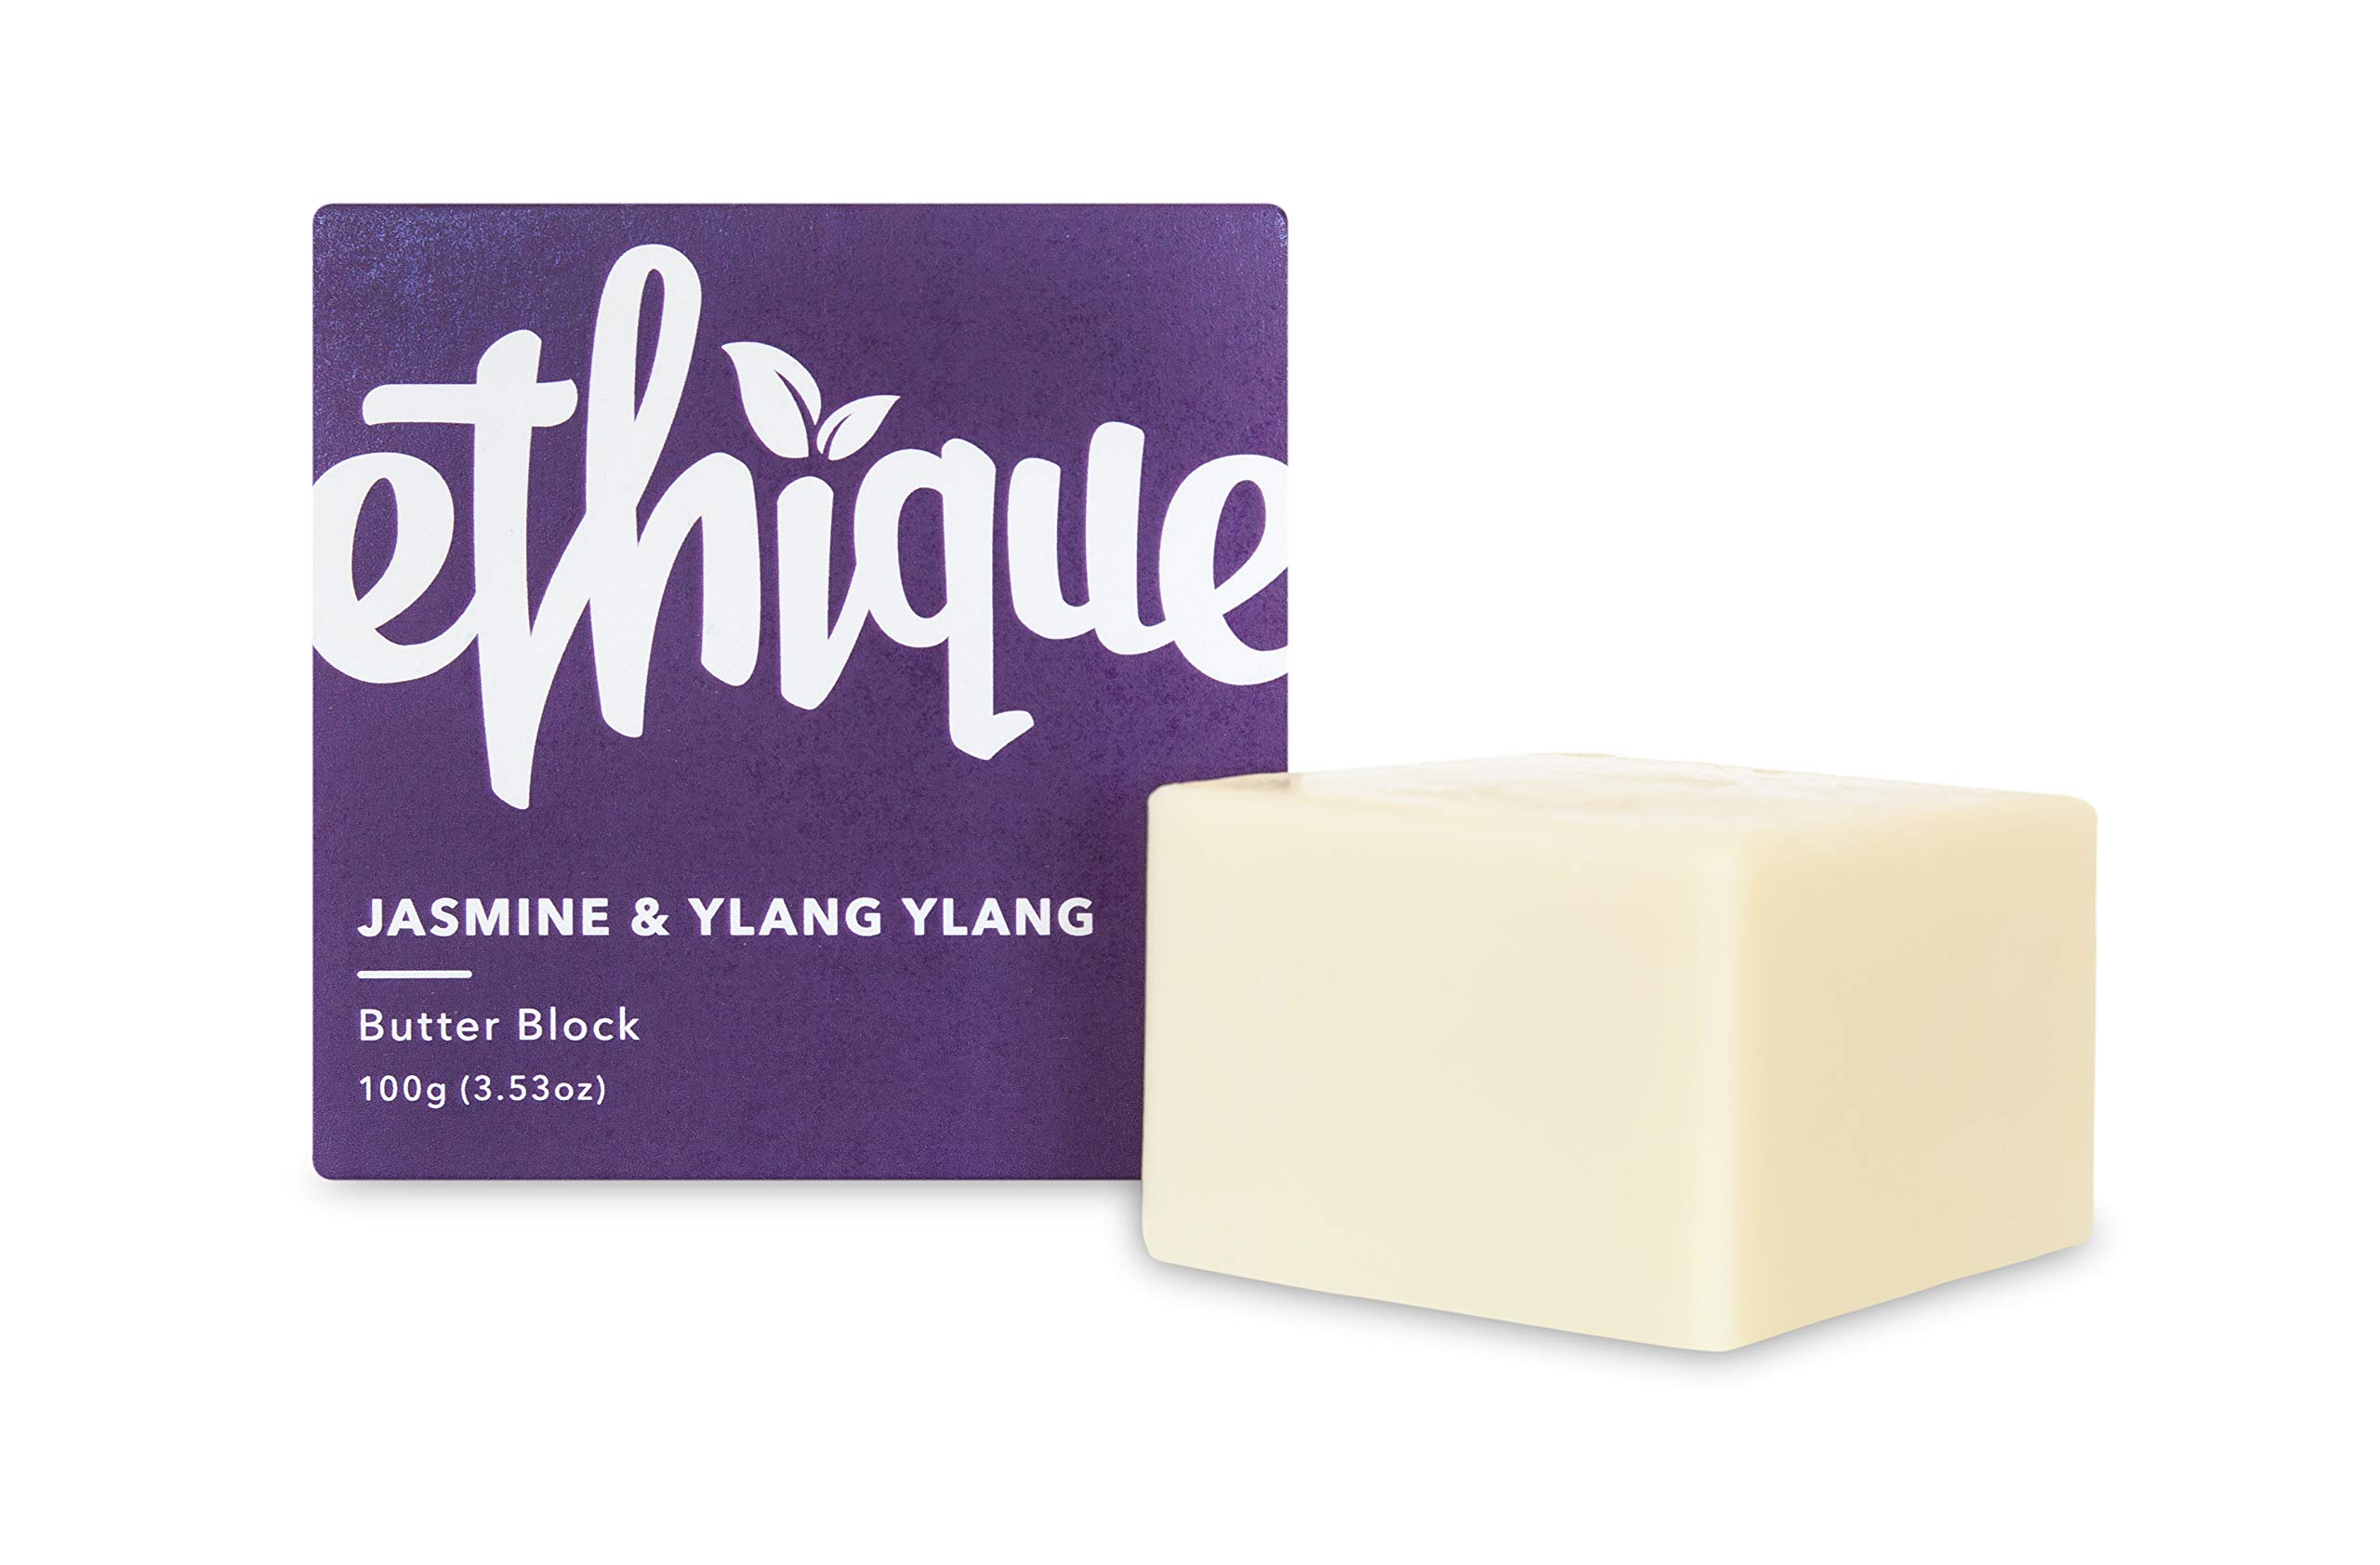 Ethique Eco-Friendly Butter Block, Jasmine & Ylang Ylang 3.53 oz by Ethique